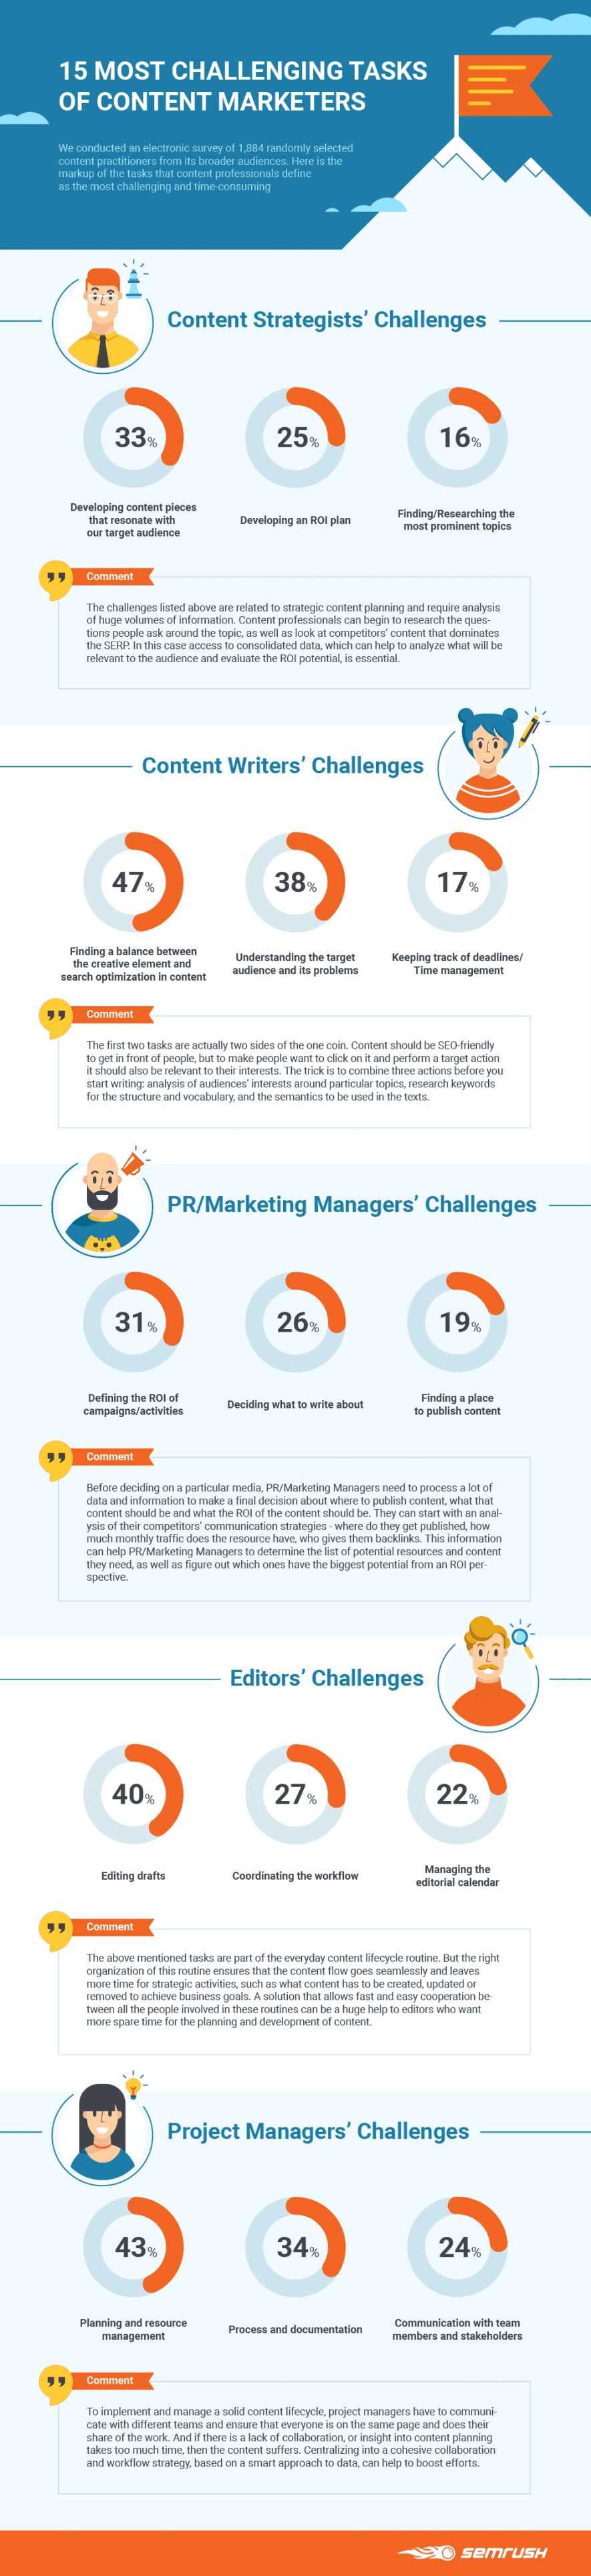 The 15 Most Challenging Tasks of Content Marketing [Infographic] | Social Media Today